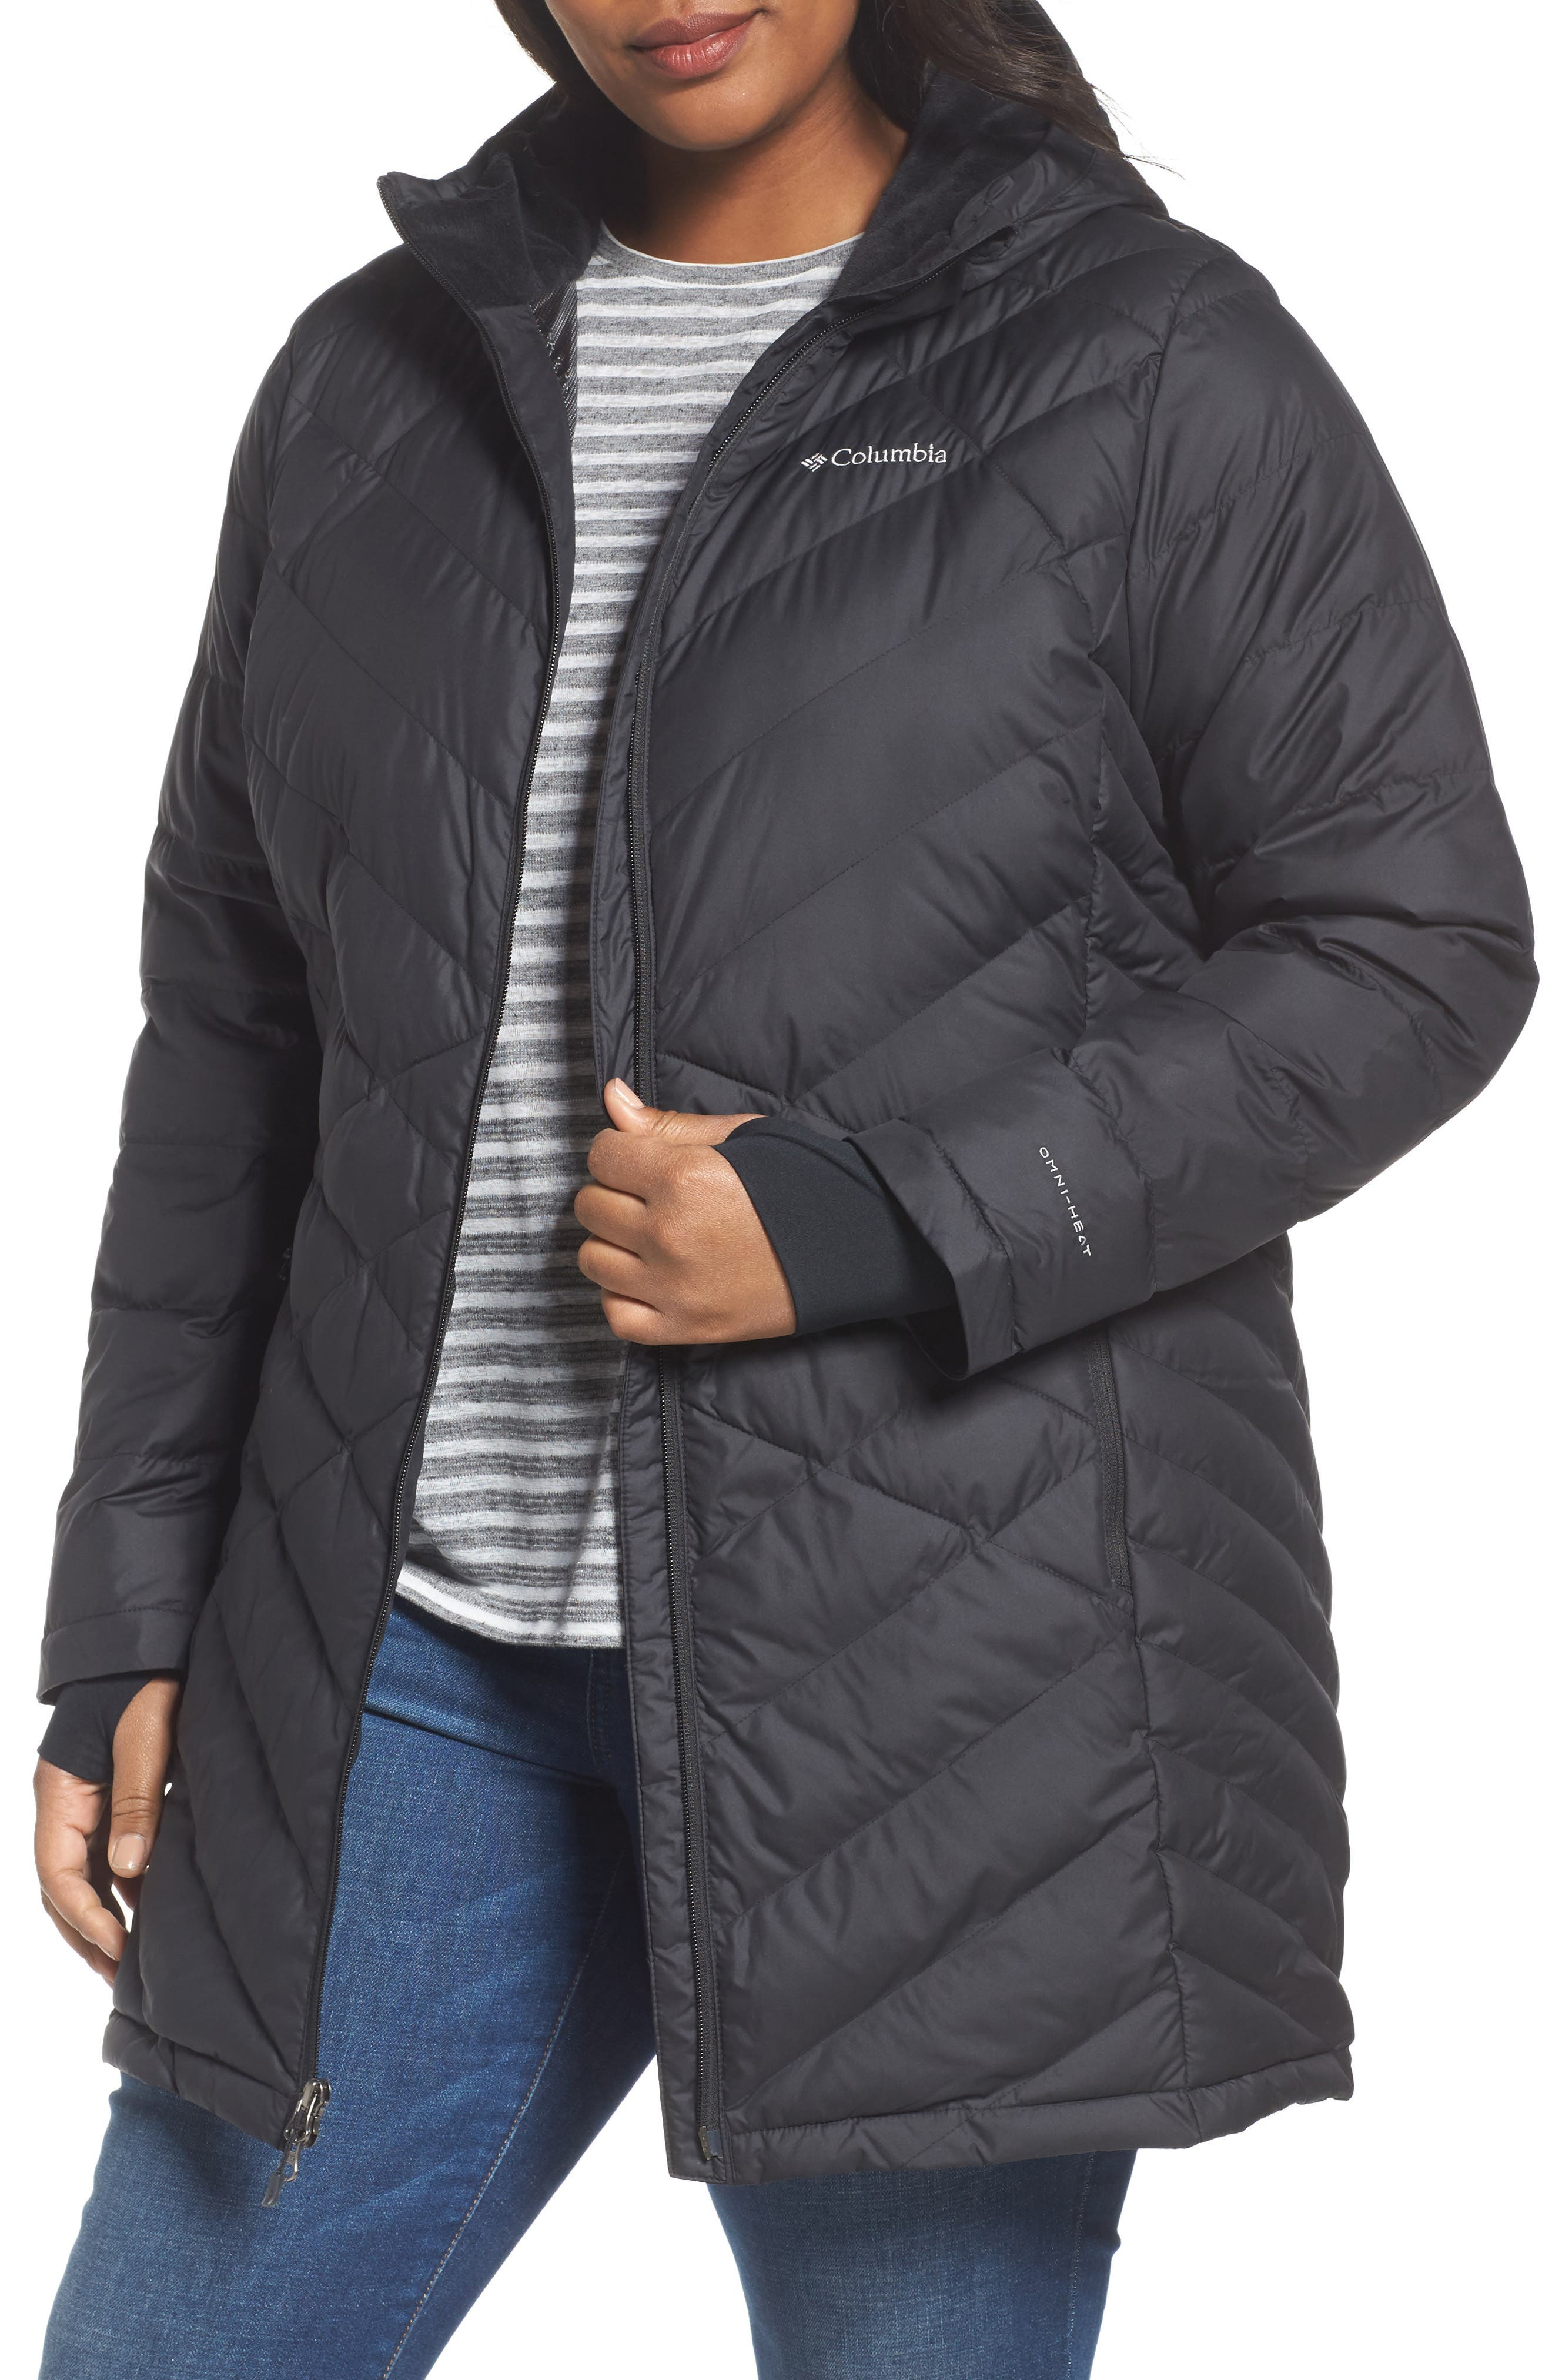 Heavenly Water Resistant Insulated Long Hooded Jacket, Main, color, 010